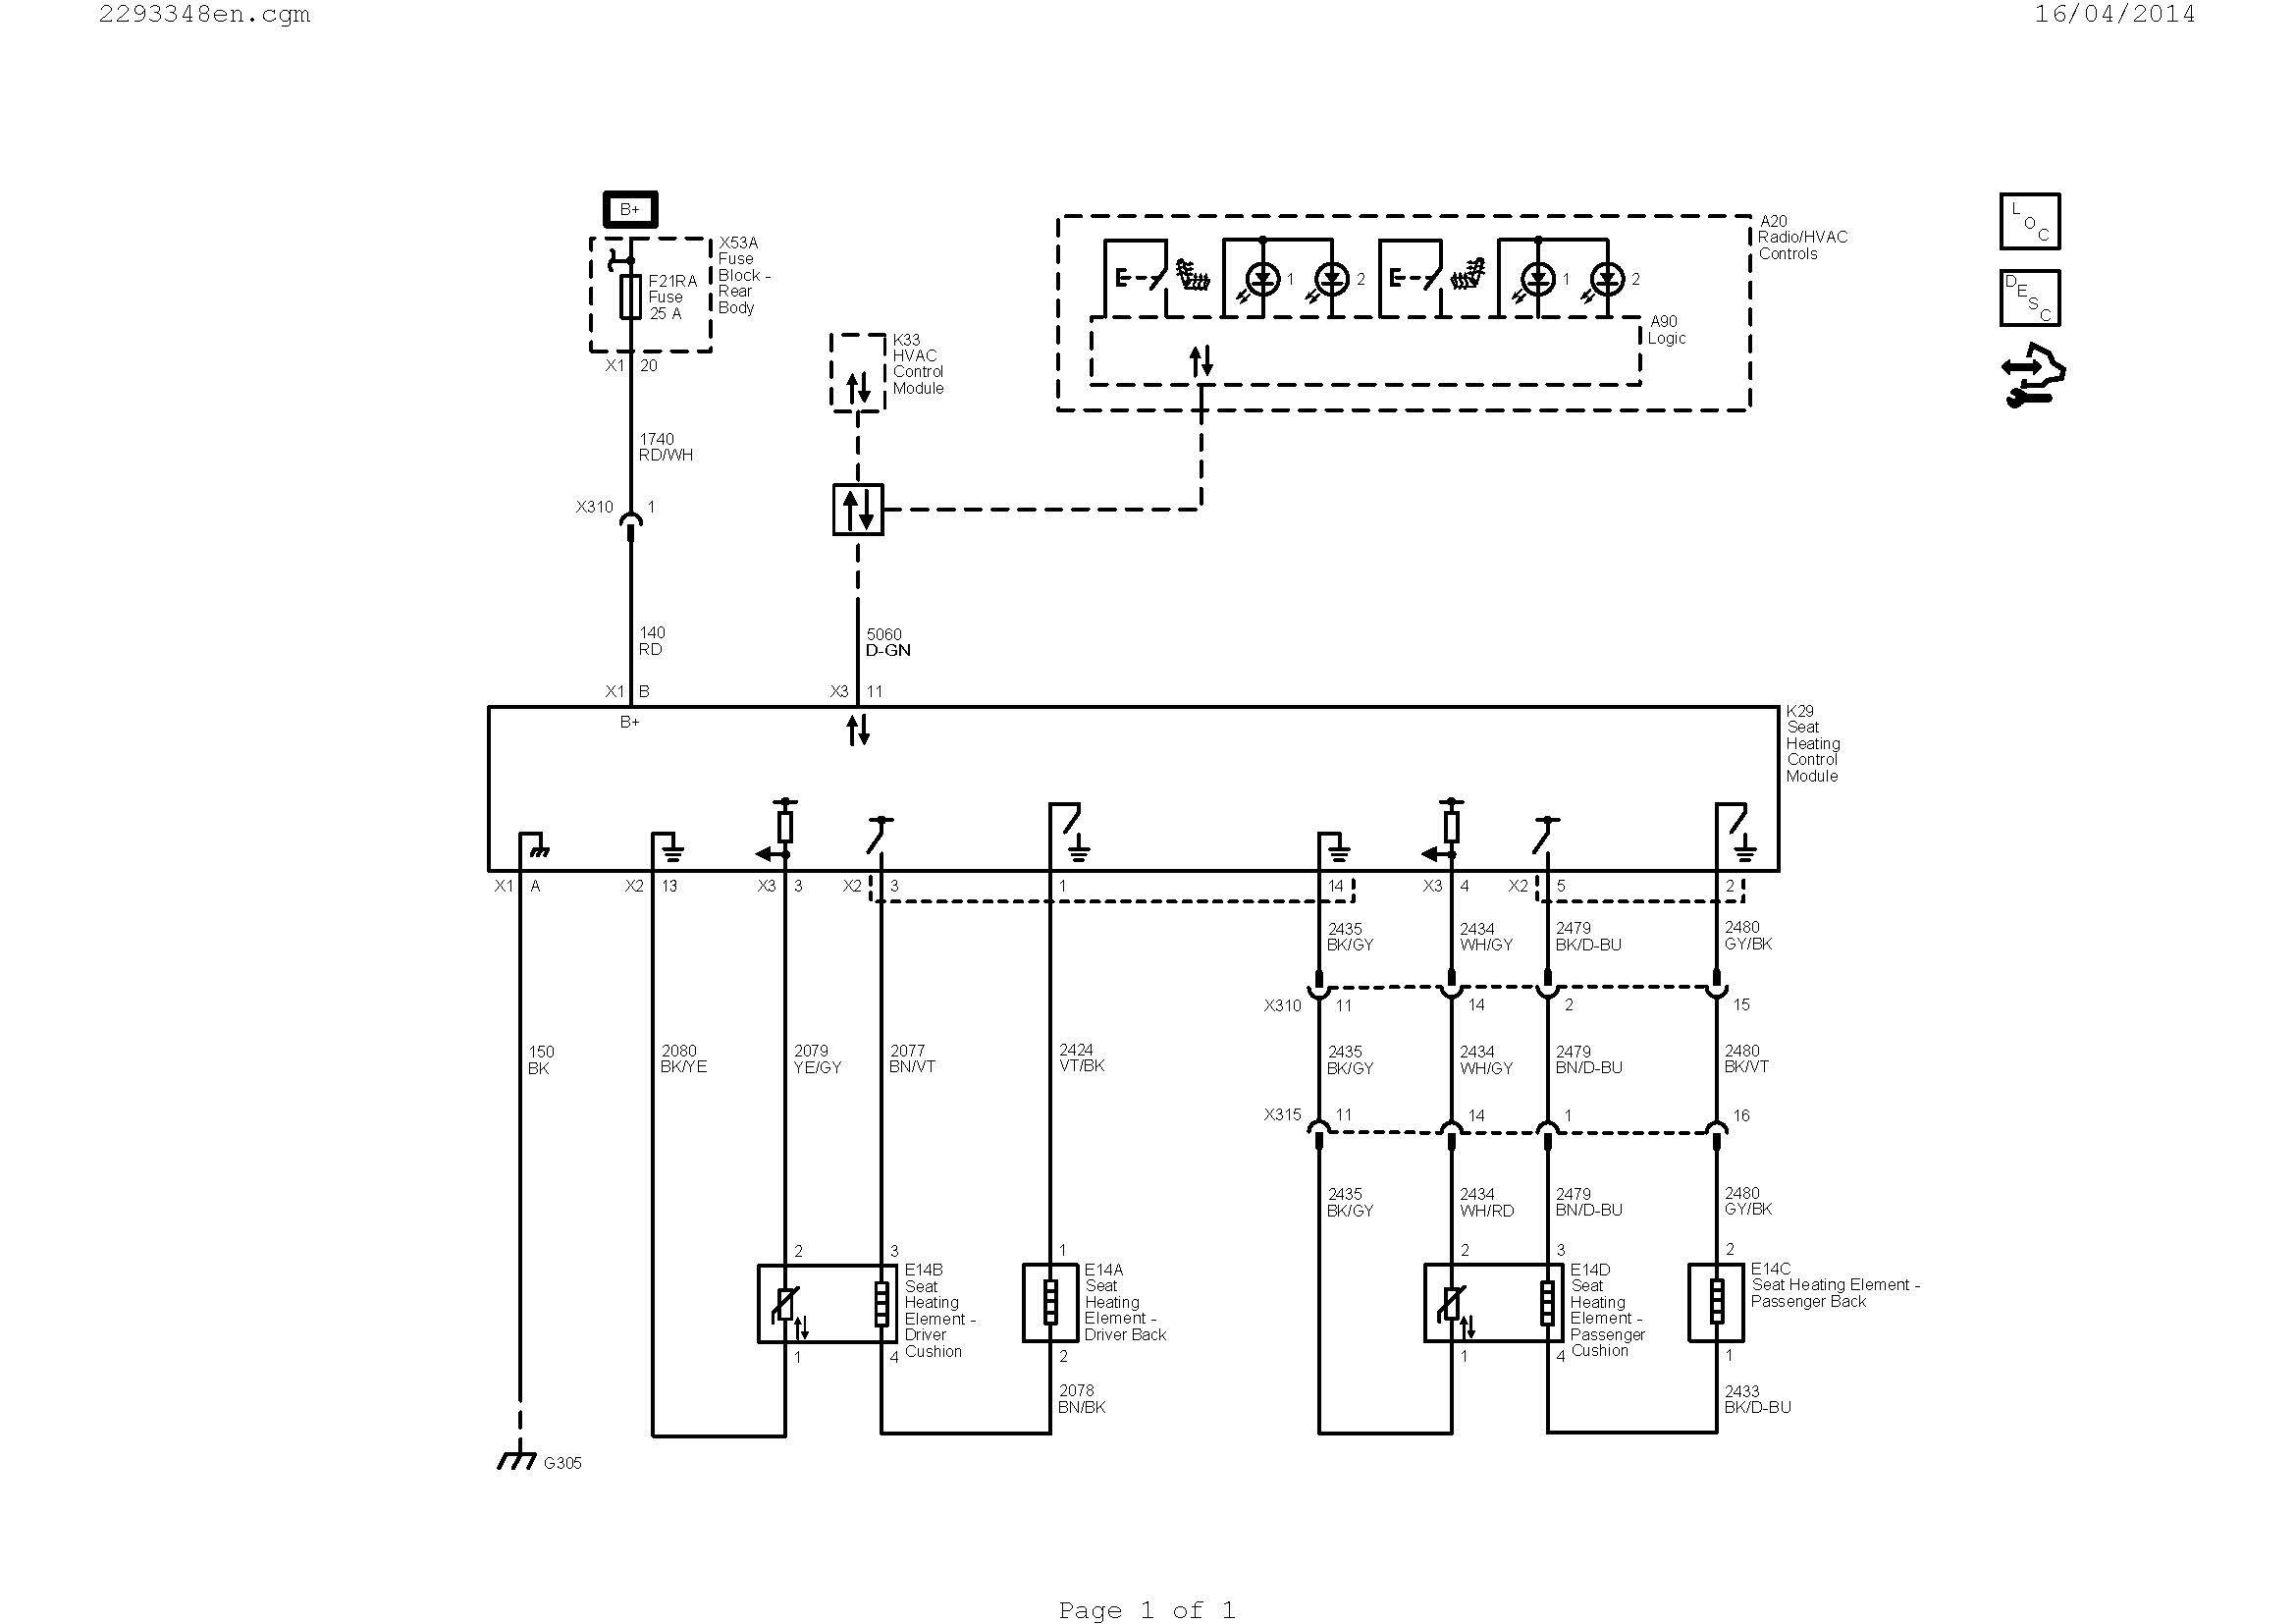 furnace fan motor wiring diagram Download-furnace blower motor wiring diagram Collection Wiring A Ac Thermostat Diagram New Wiring Diagram Ac 10-l